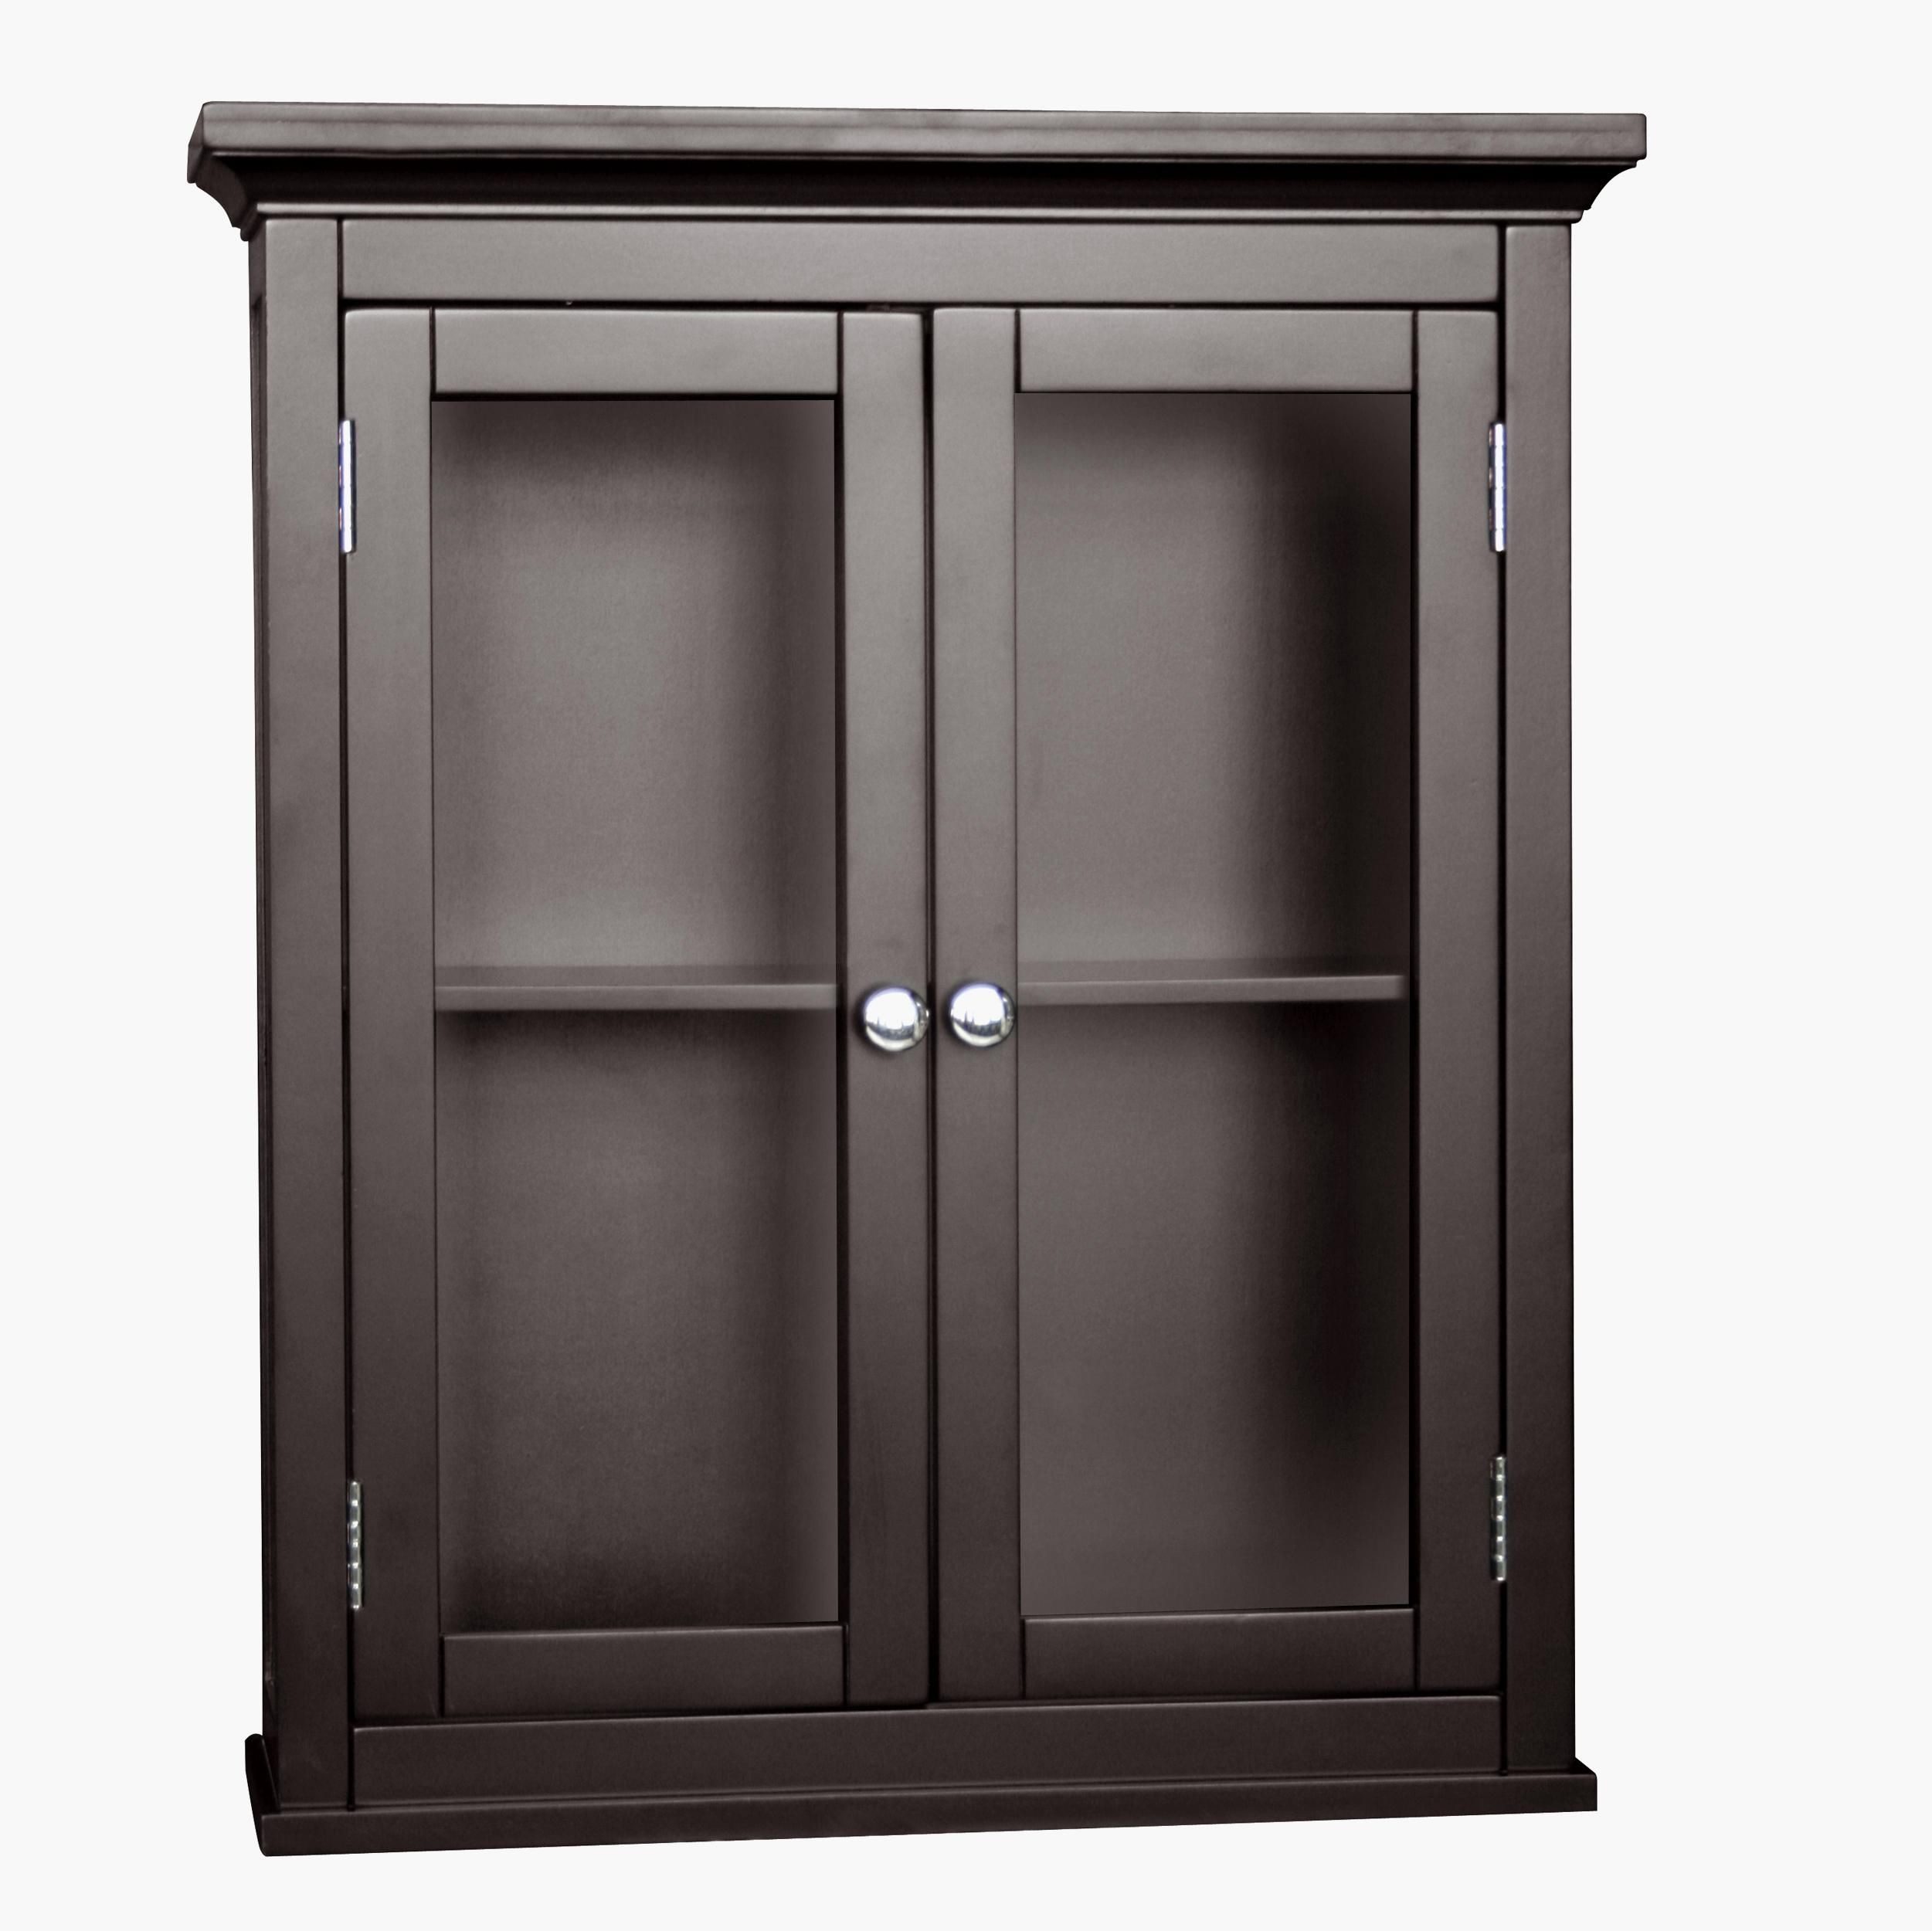 Black Wall Cabinets With Glass Doors Httpadvice Tips